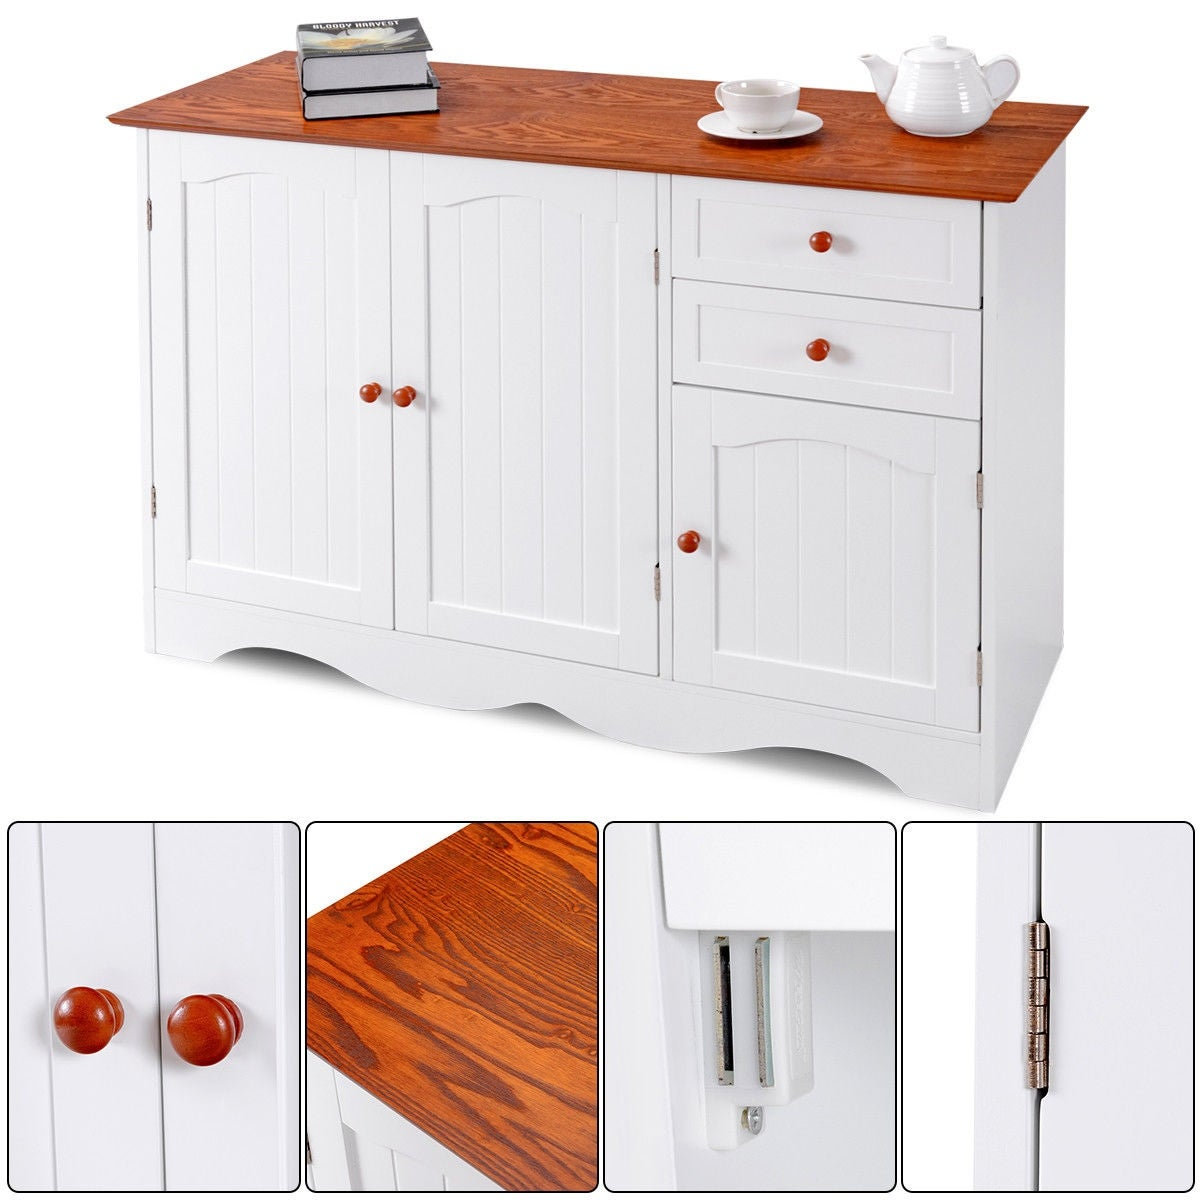 Shop Gymax Buffet Storage Cabinet Console Table Kitchen Sideboardd Home  Furni W/2 Drawers   As Pic   Free Shipping Today   Overstock.com   22704685